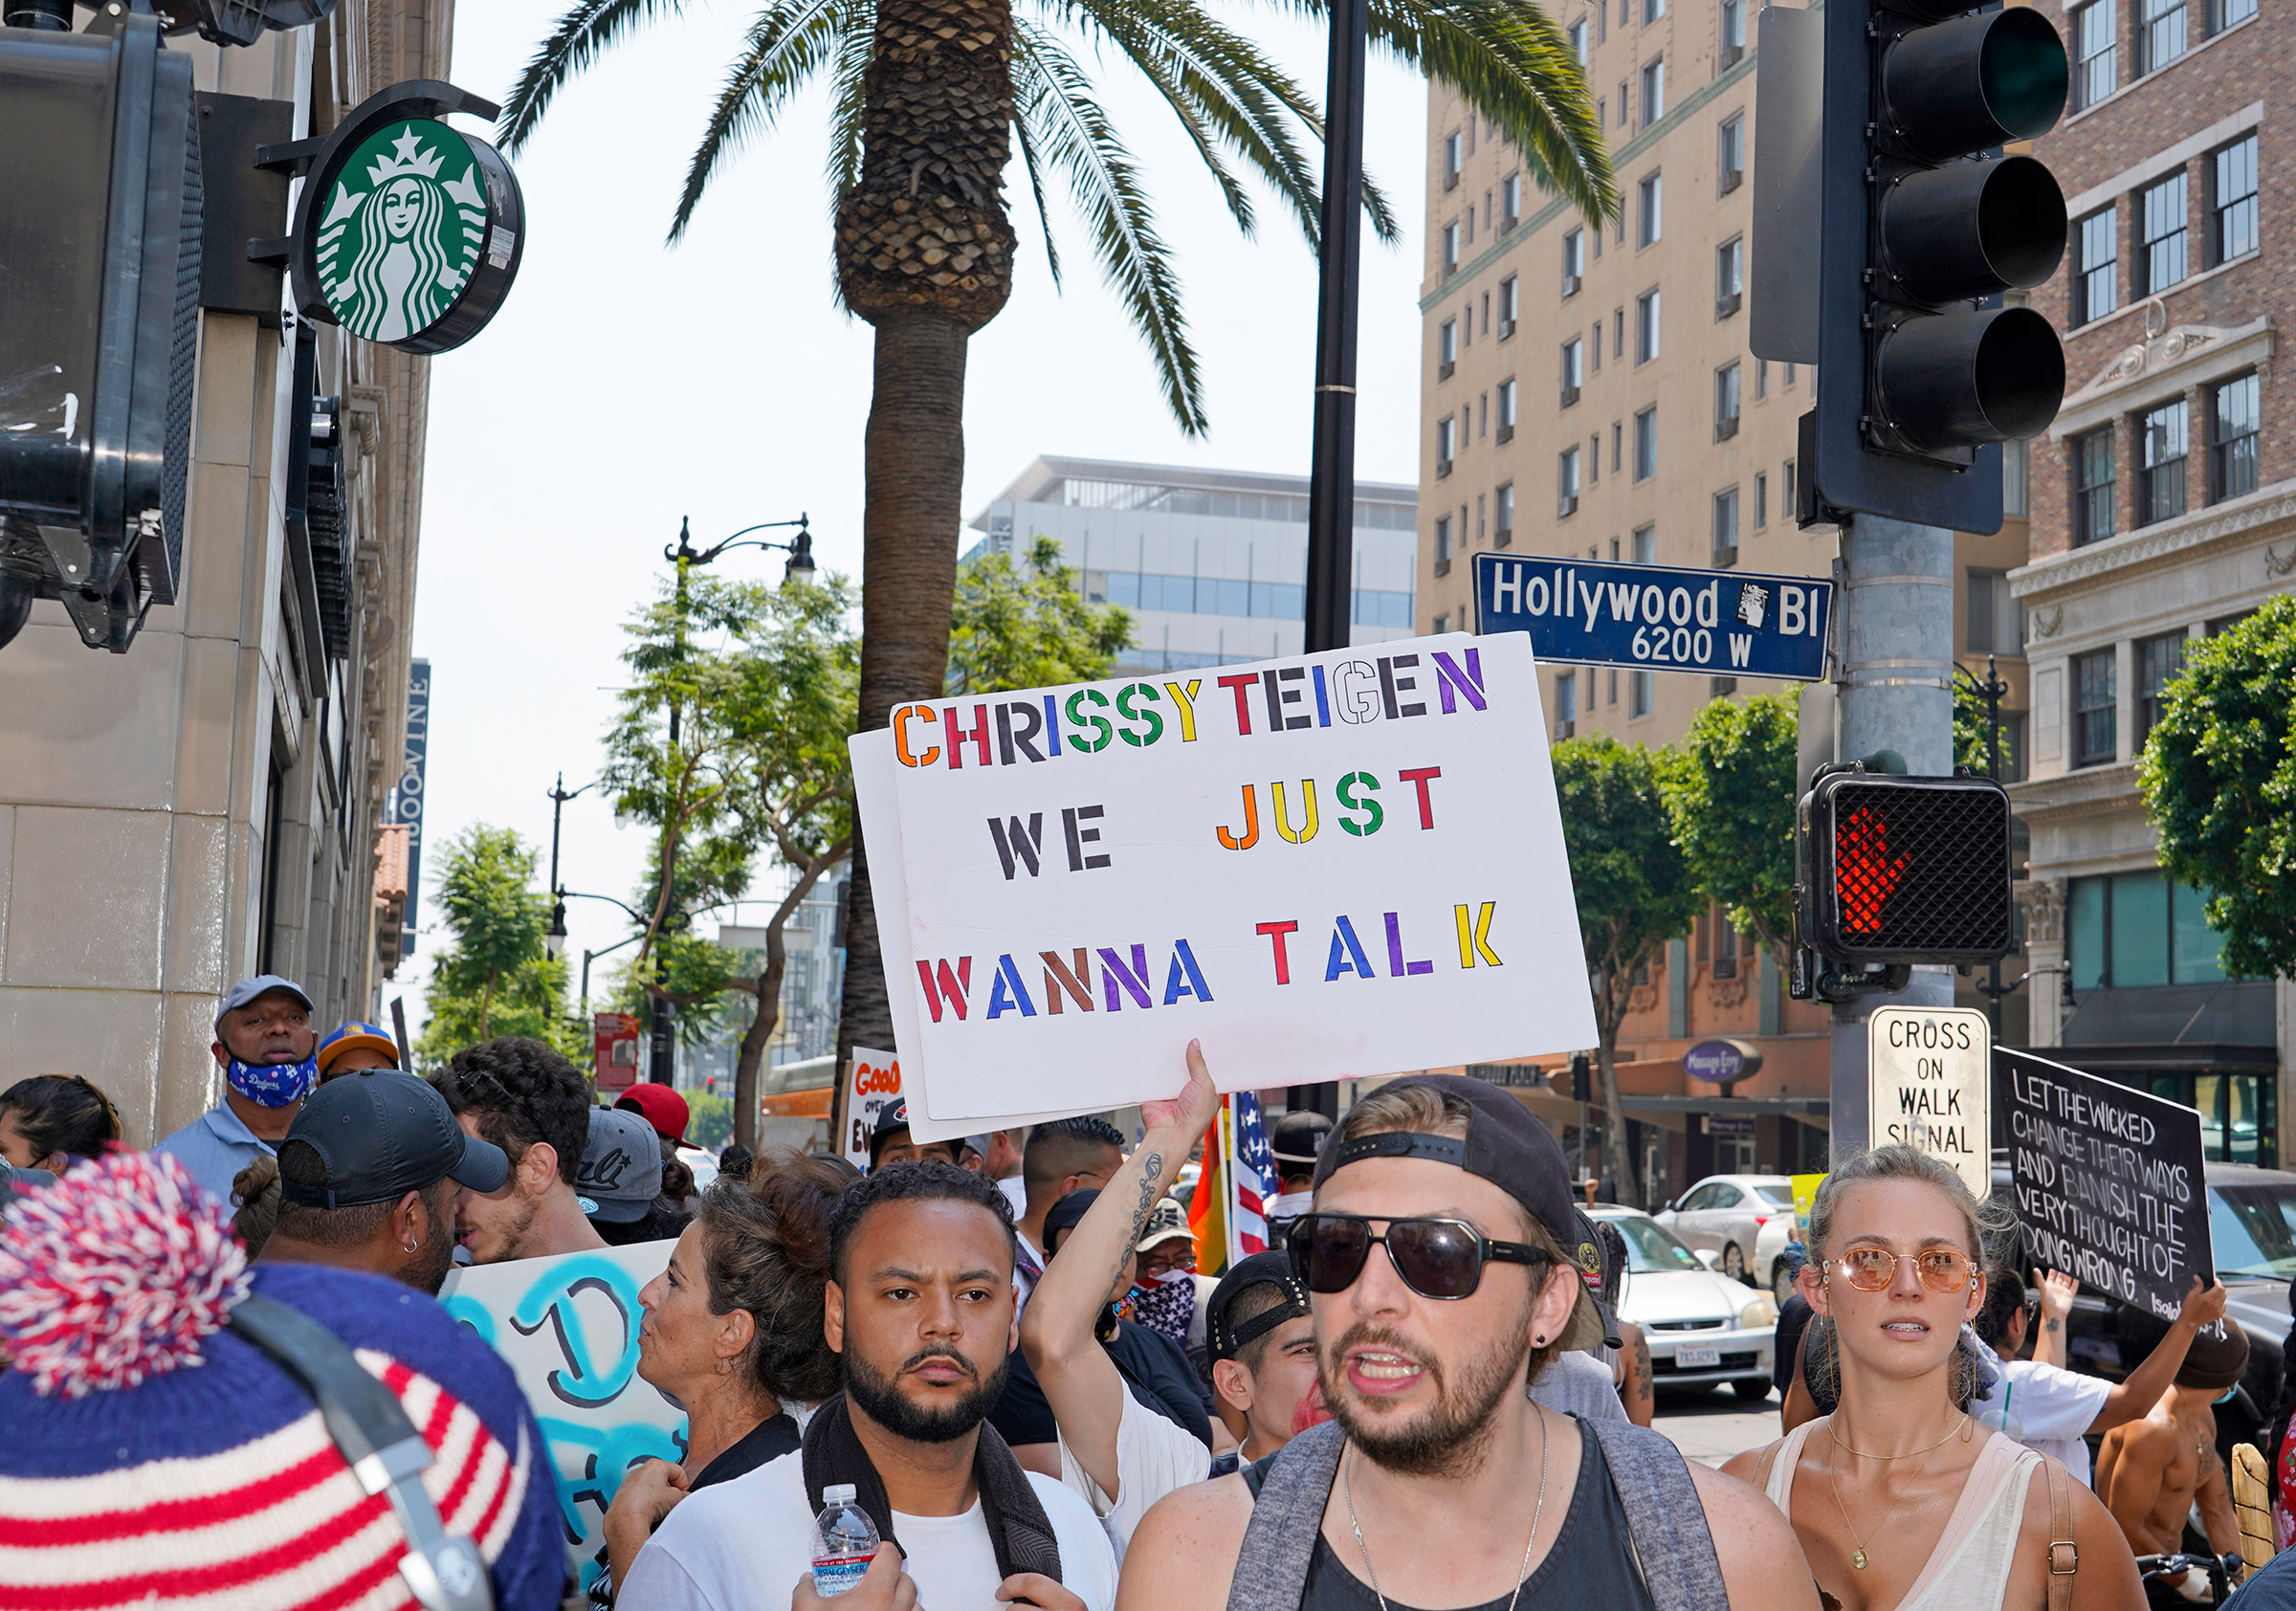 Protesters at a Save Our Children rally in Los Angeles, Aug. 22, 2020.